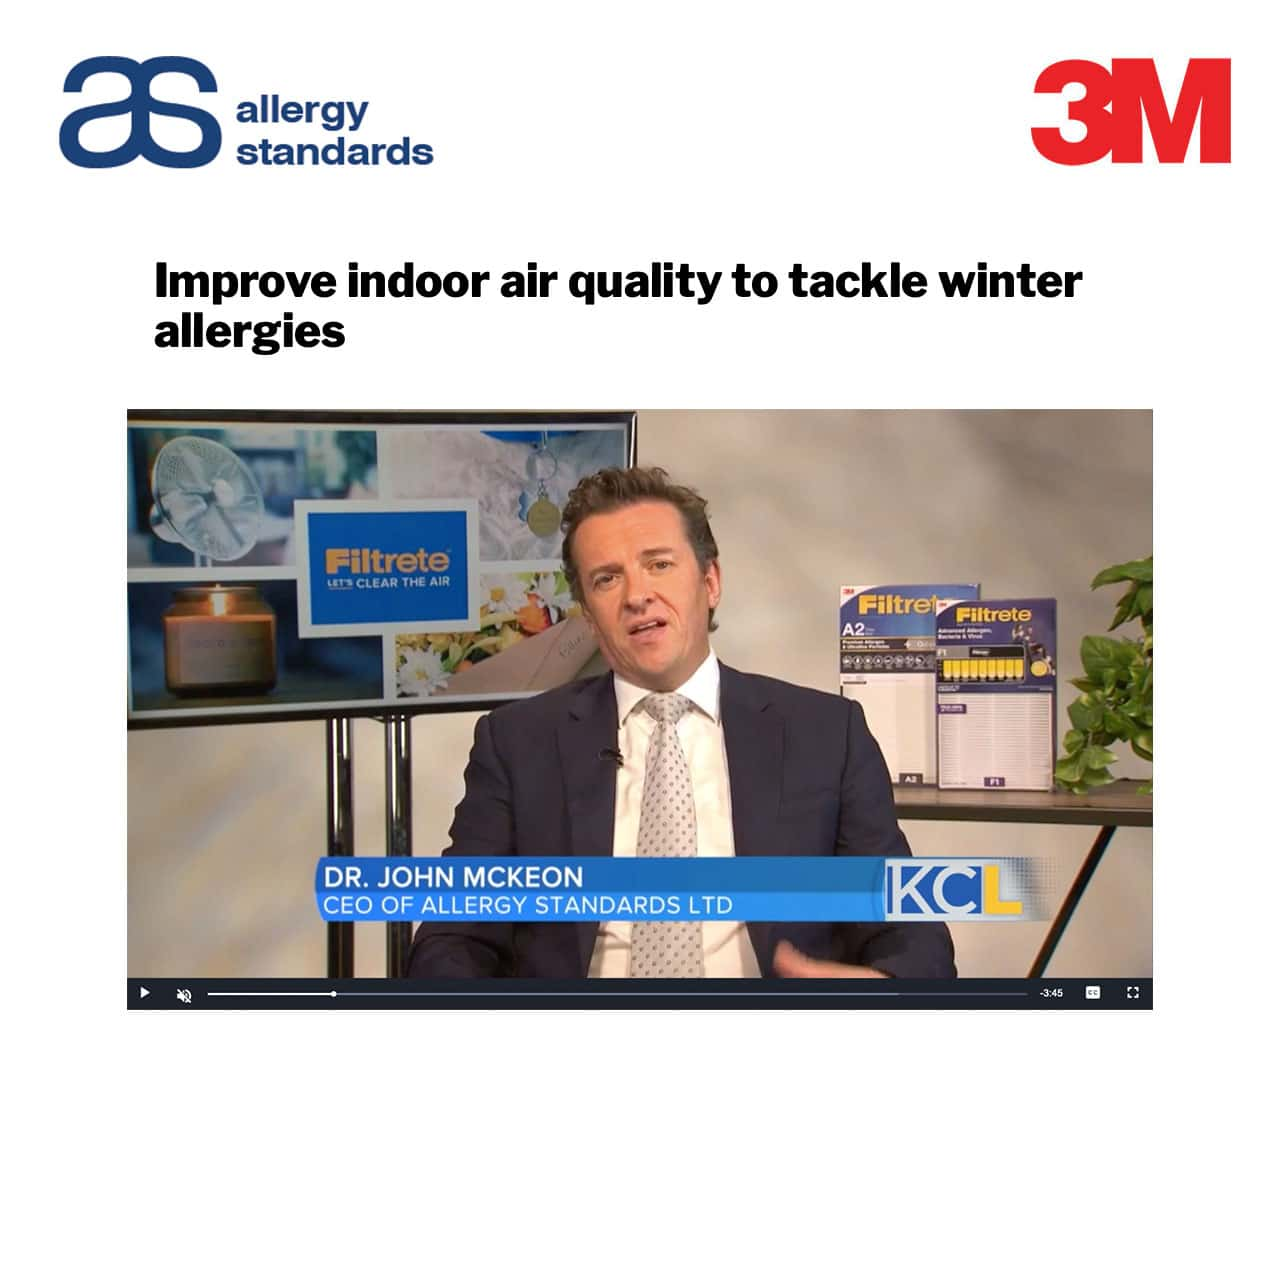 3M-Media-Tour-2019-Allergy-Standards